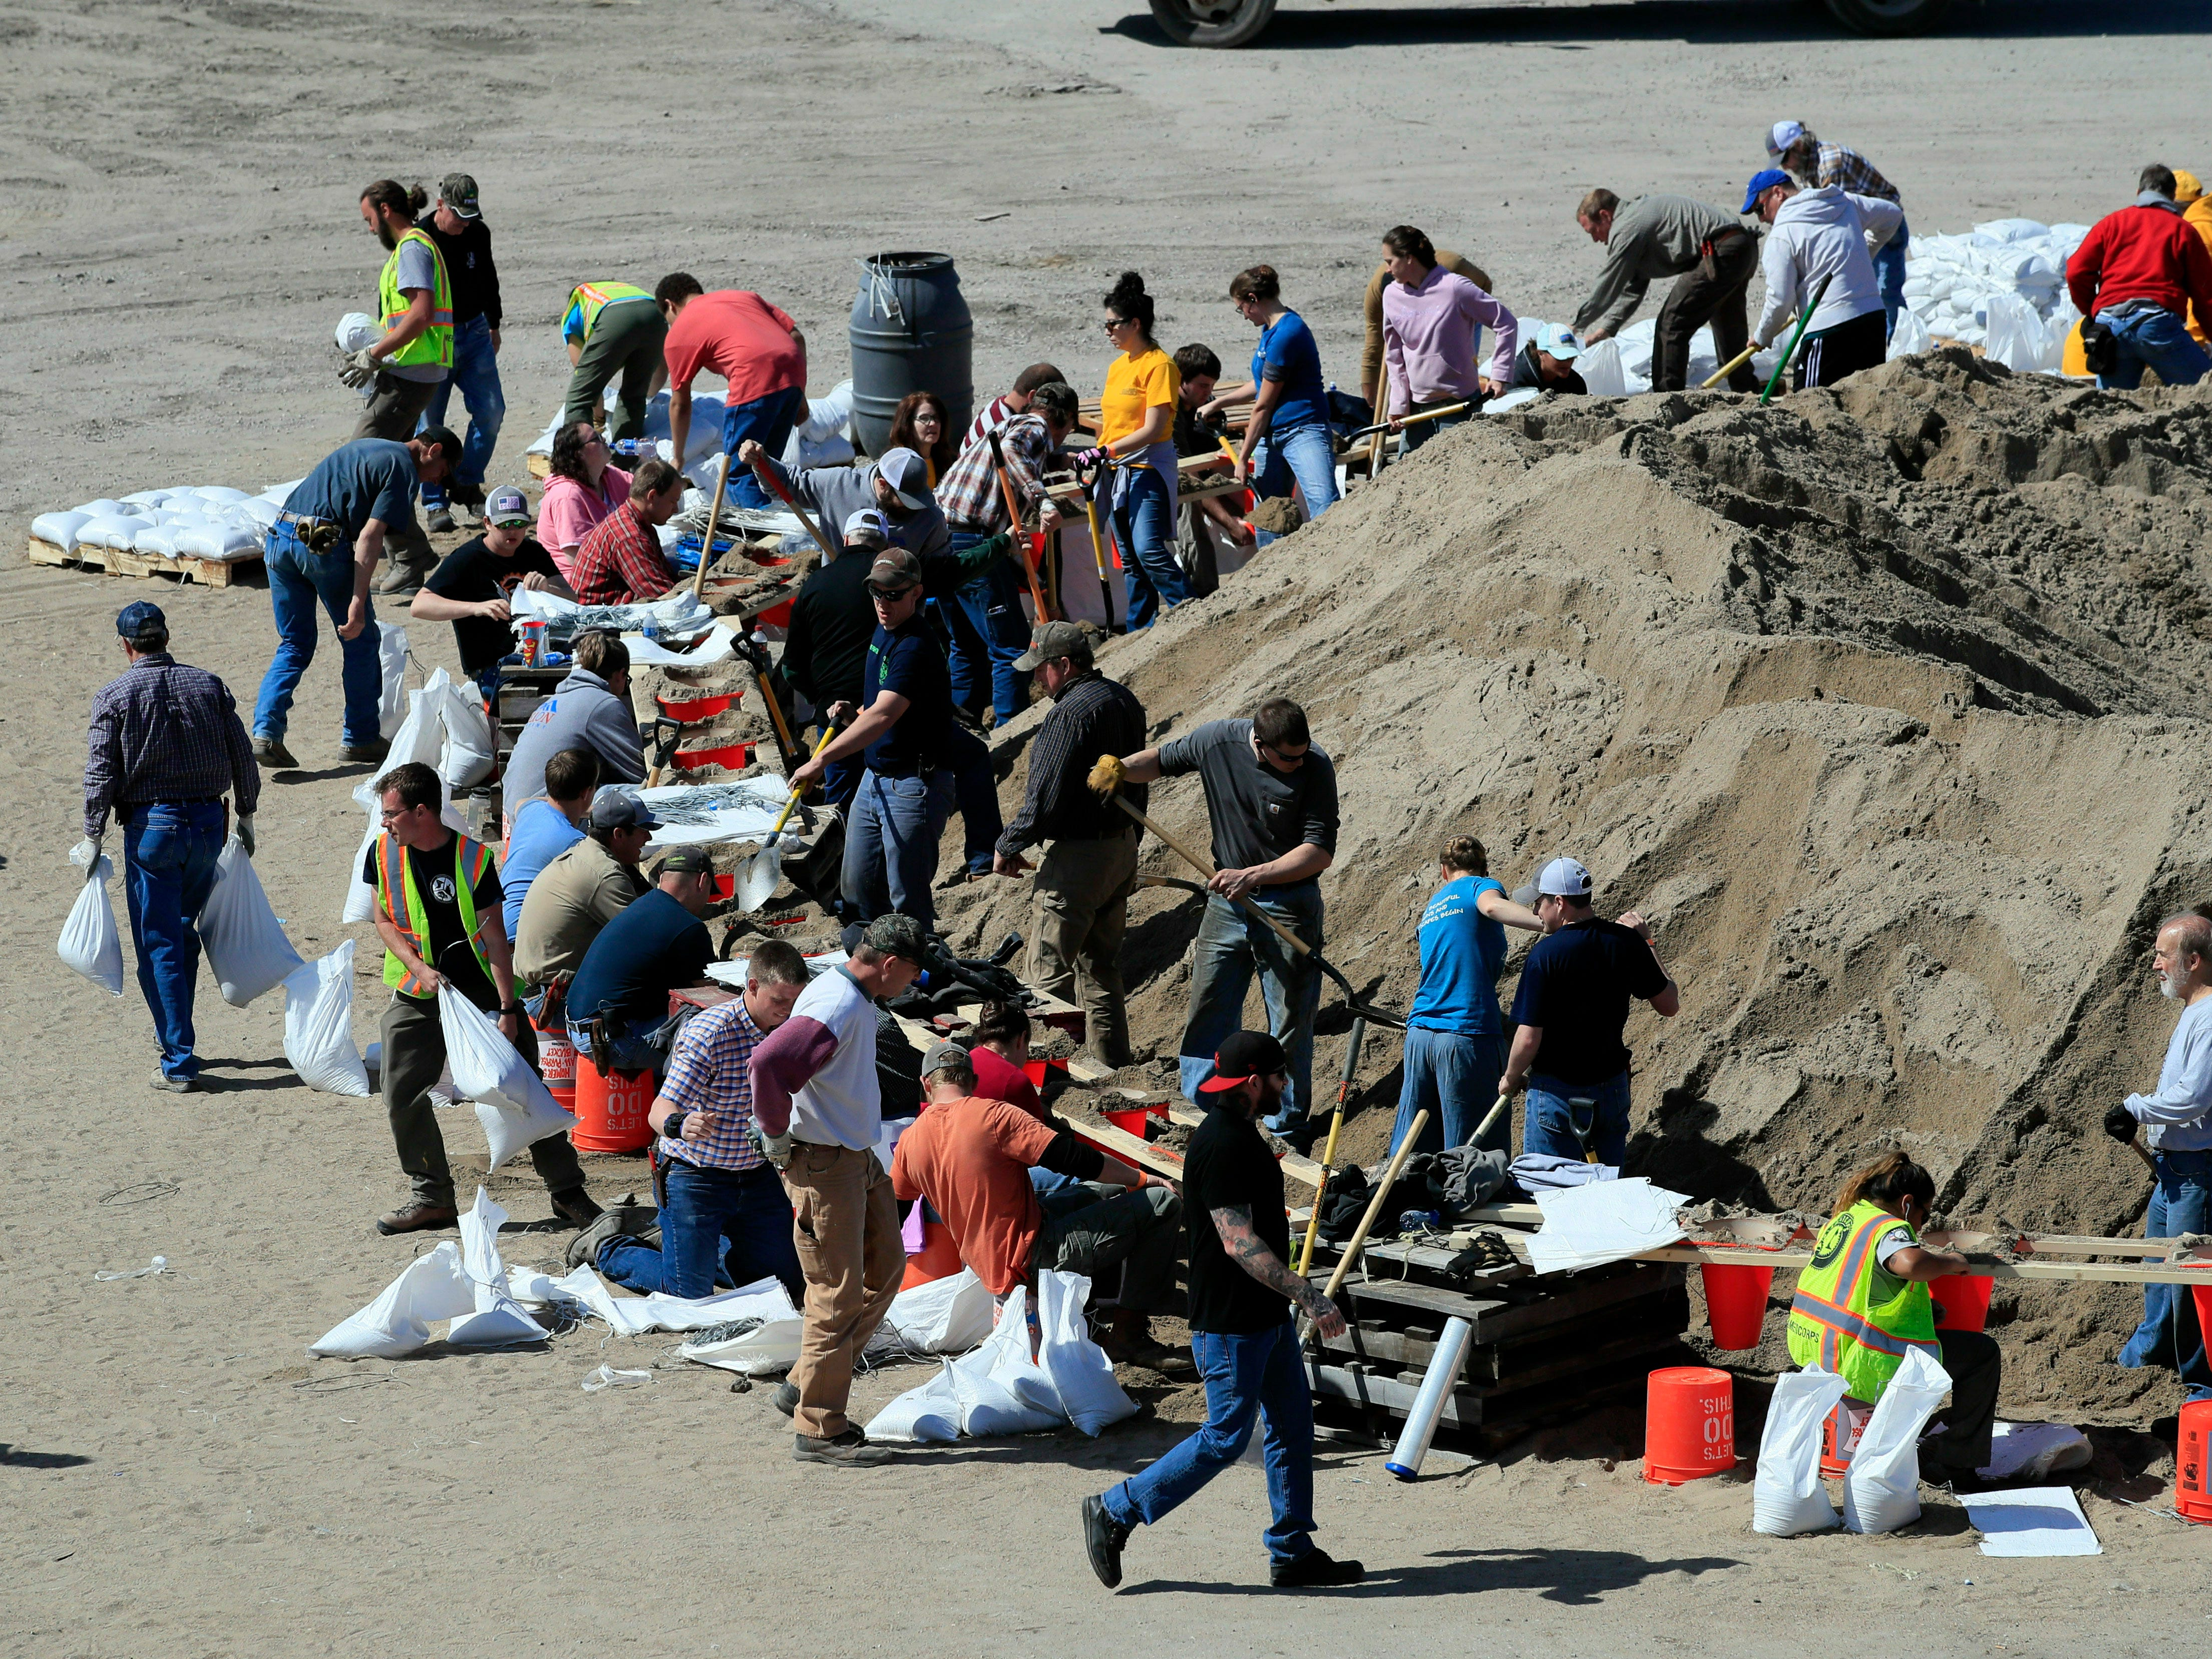 Volunteers fill sandbags in preparation for flooding along the Missouri River in St Joseph, Mo. on March 18, 2019.